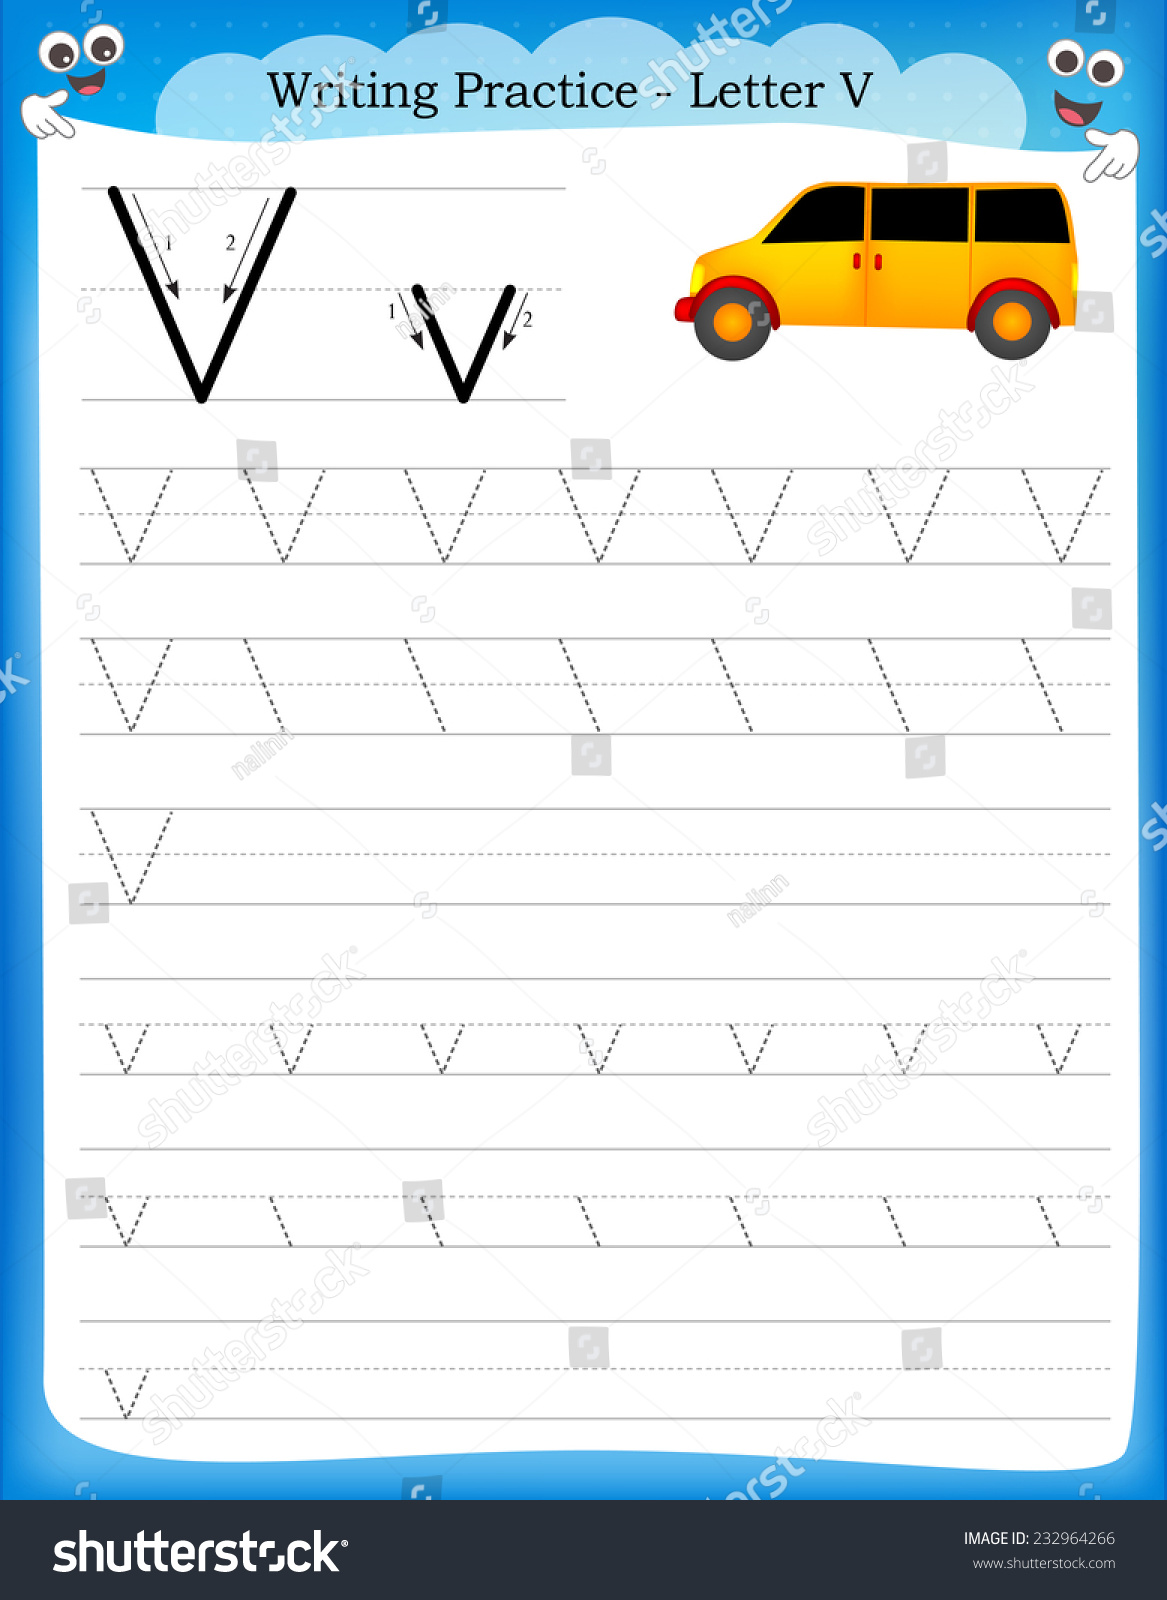 Writing Practice Letter V Printable Worksheet With Clip